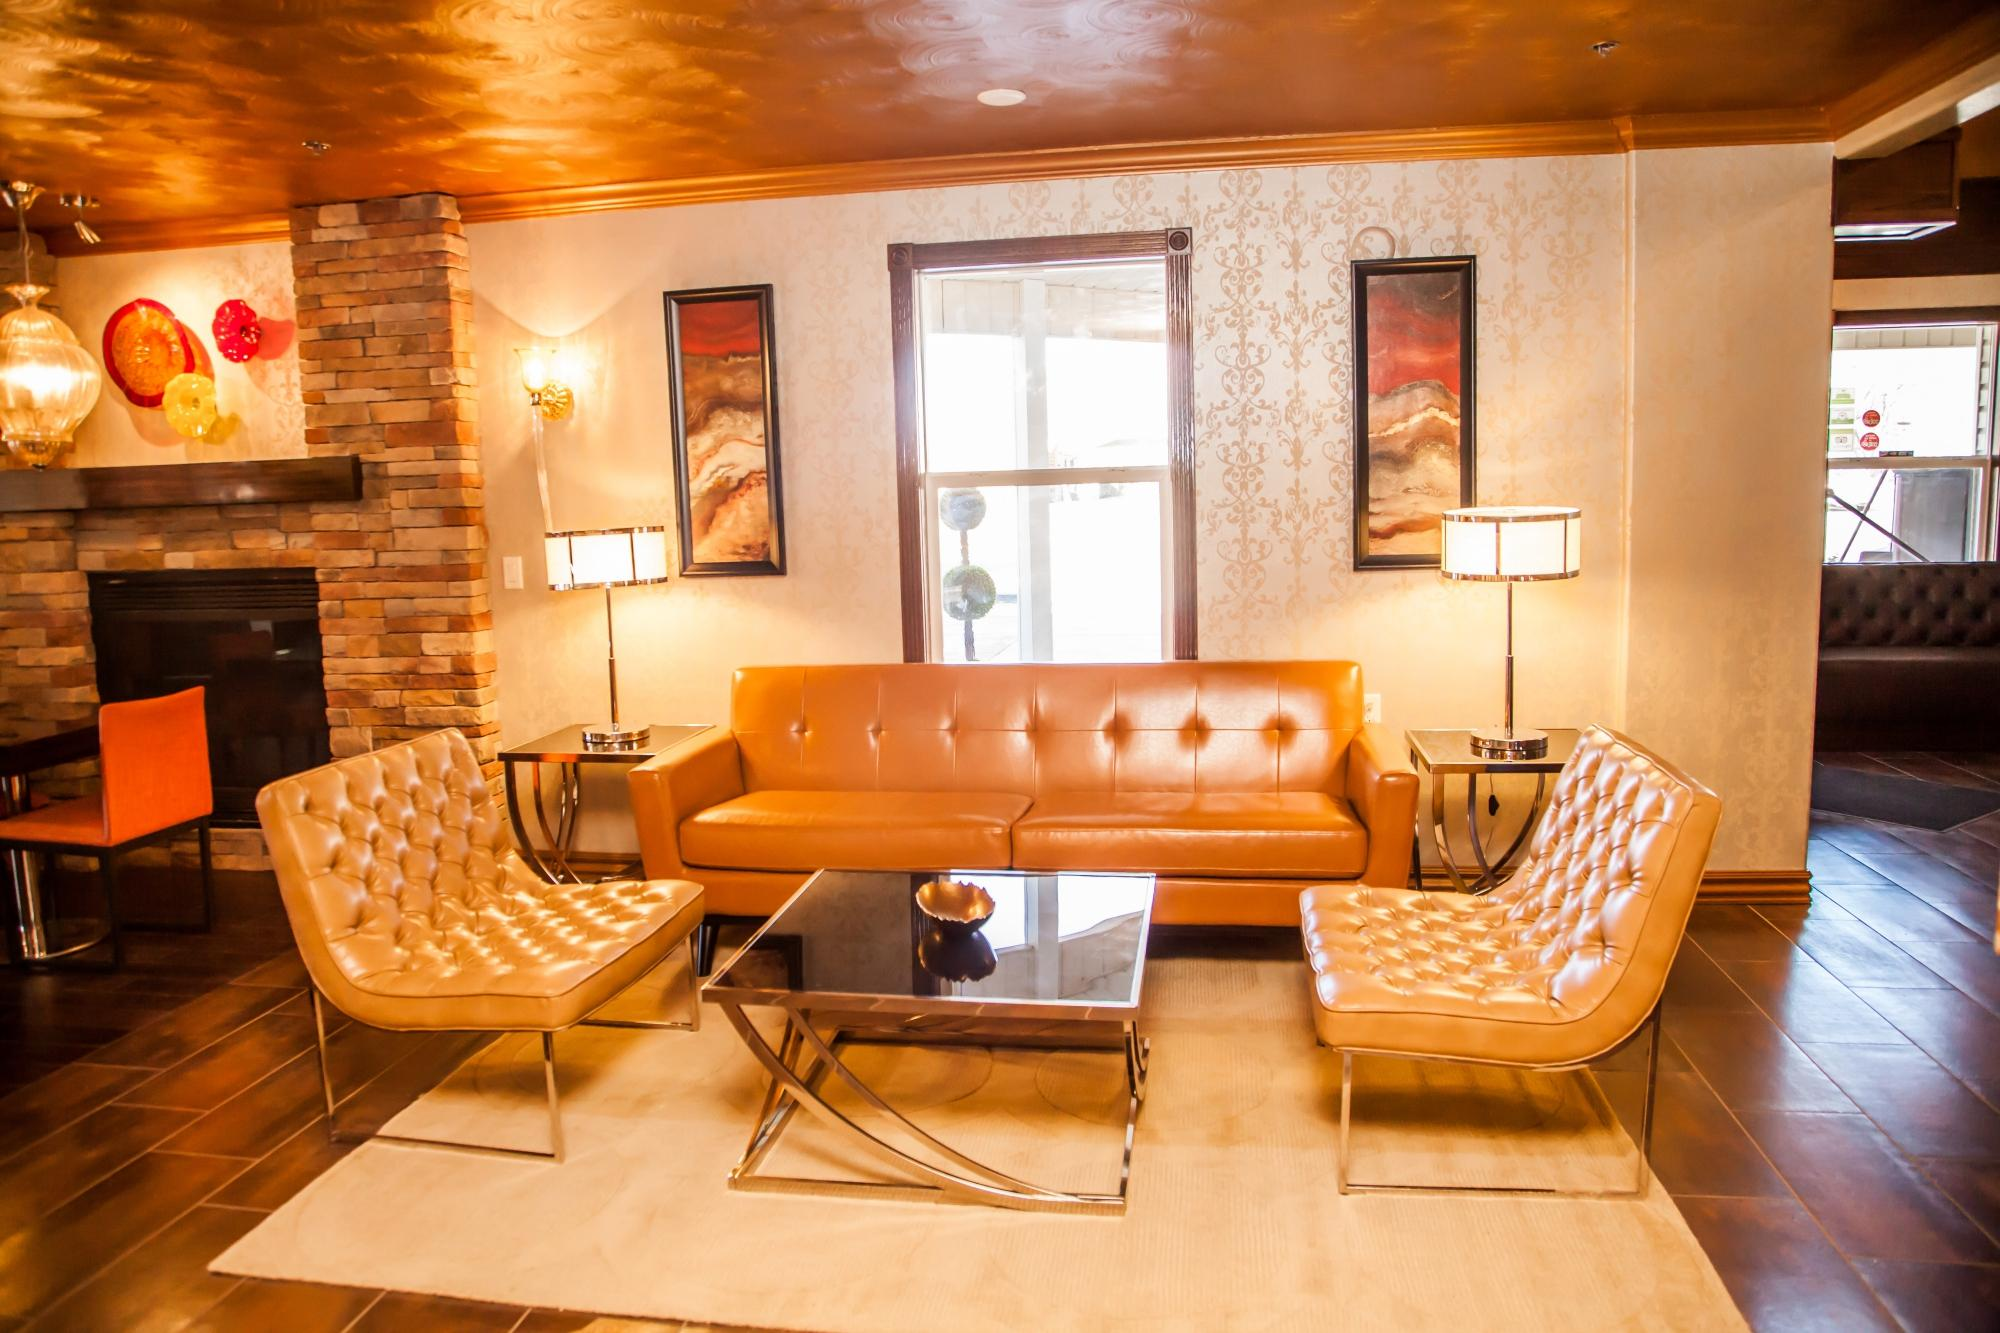 Canyons Boutique Hotel - A Canyons Collection Property